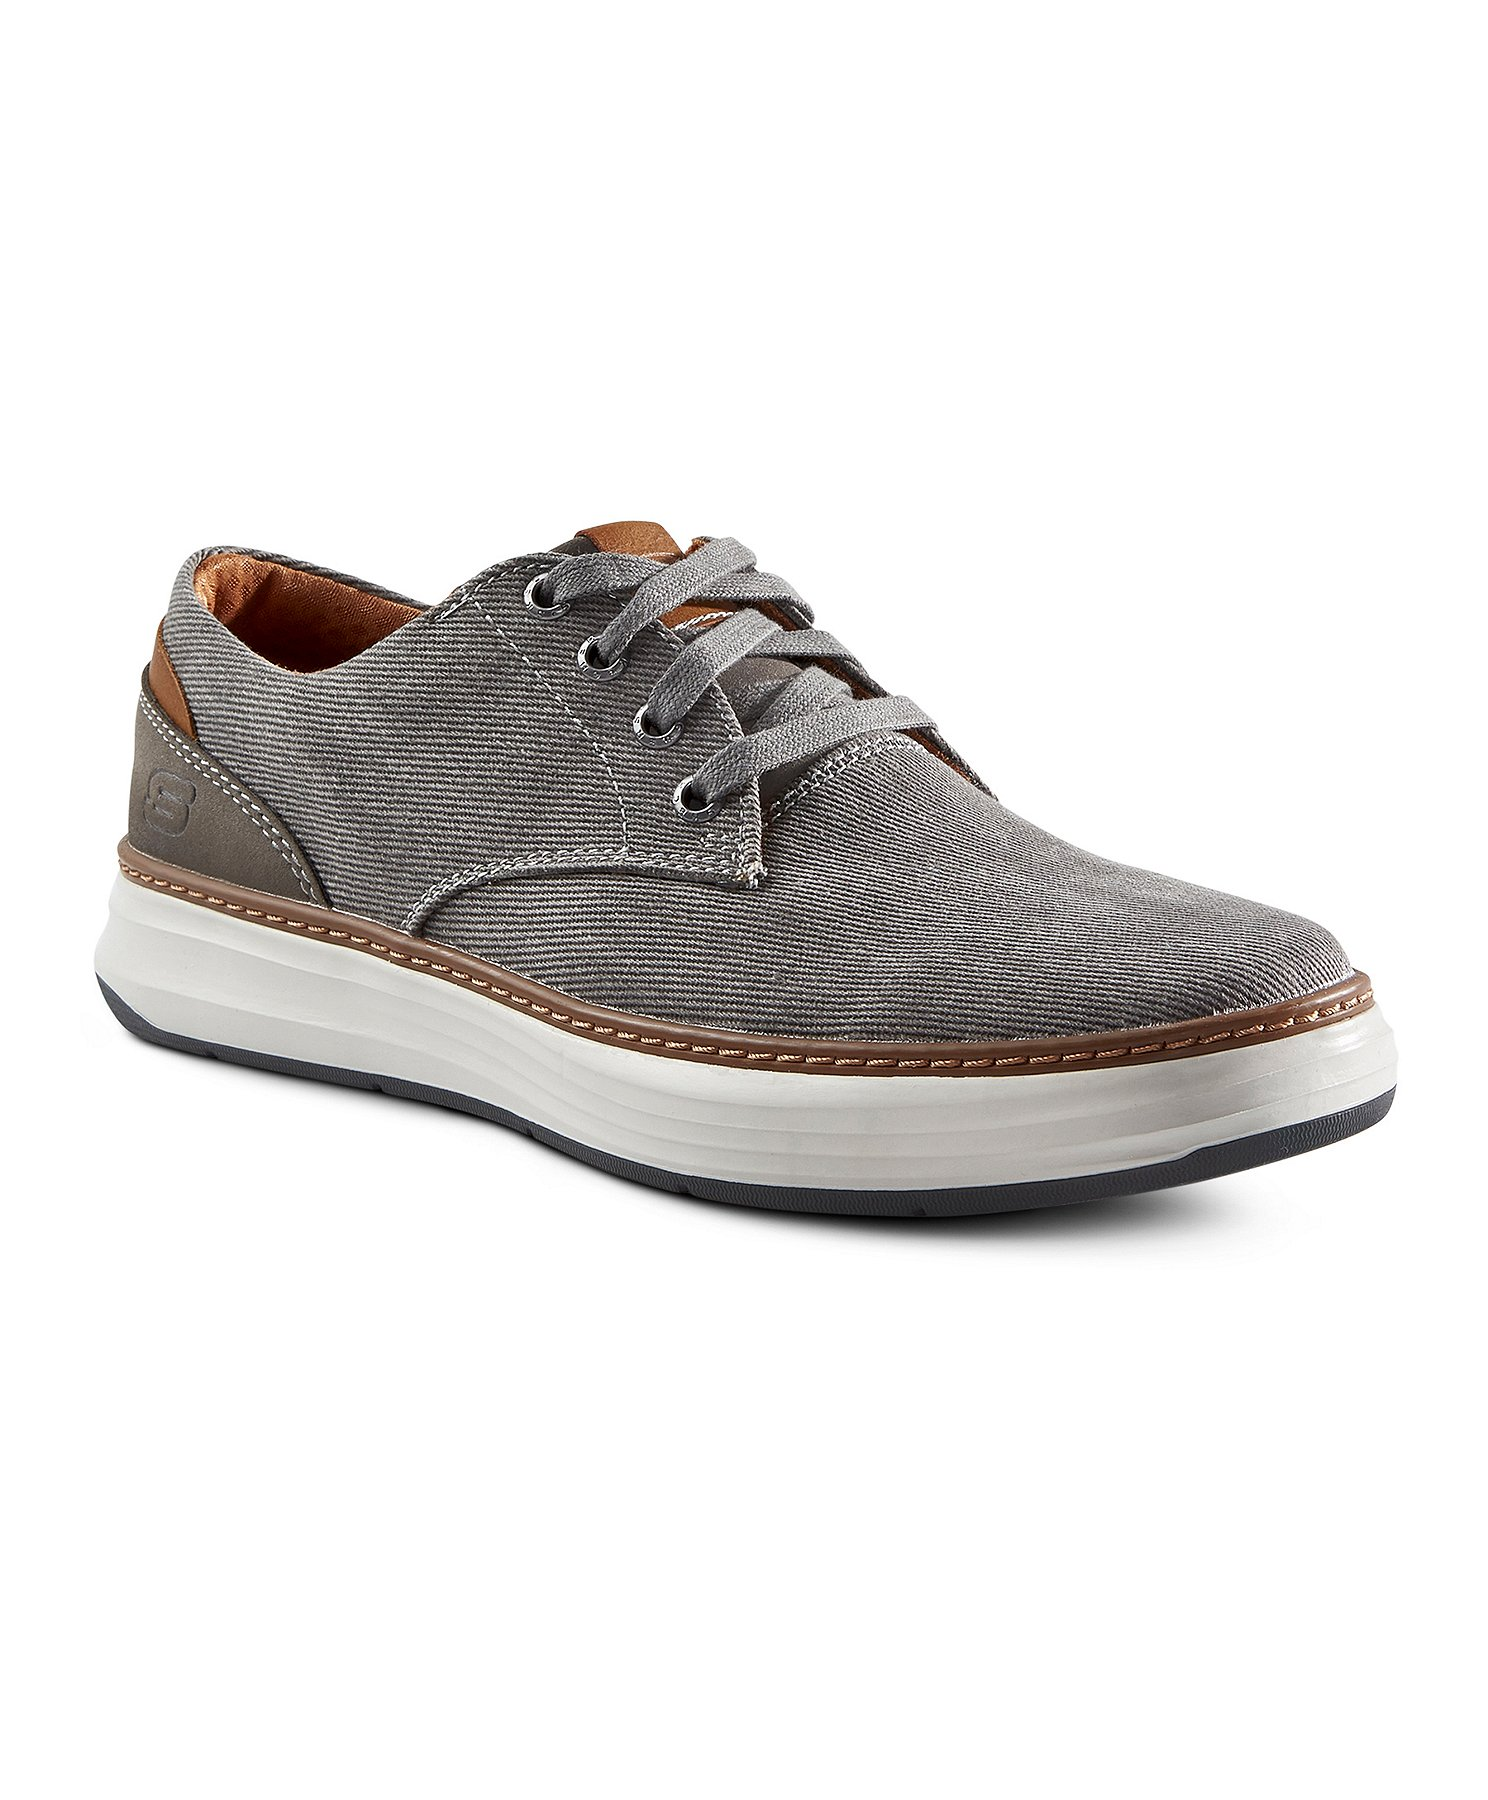 Lijadoras álbum de recortes Aventurarse  Men's Moreno Lace-Up Shoes | Mark's